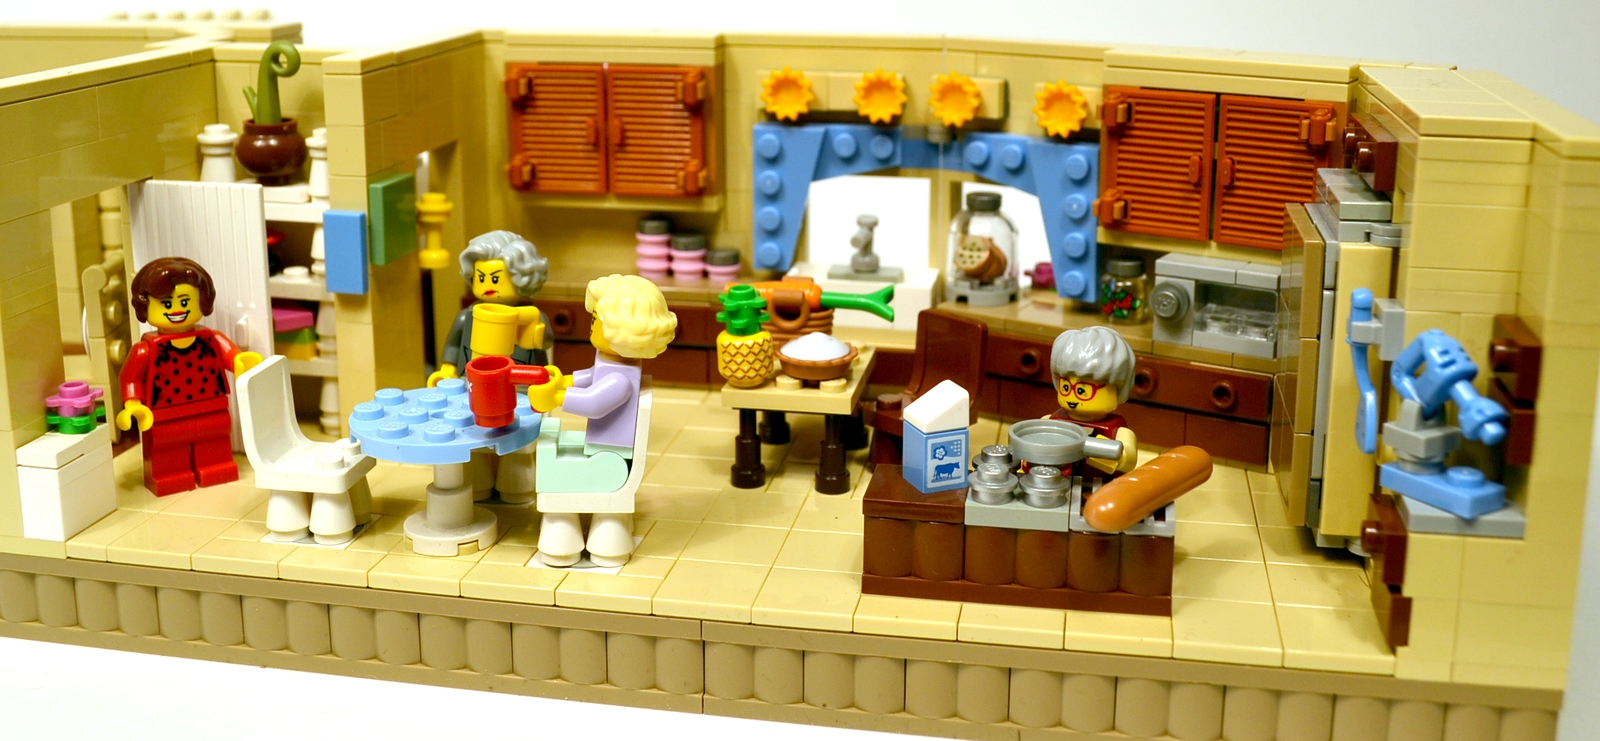 lego ideas product ideas the golden girls living room and